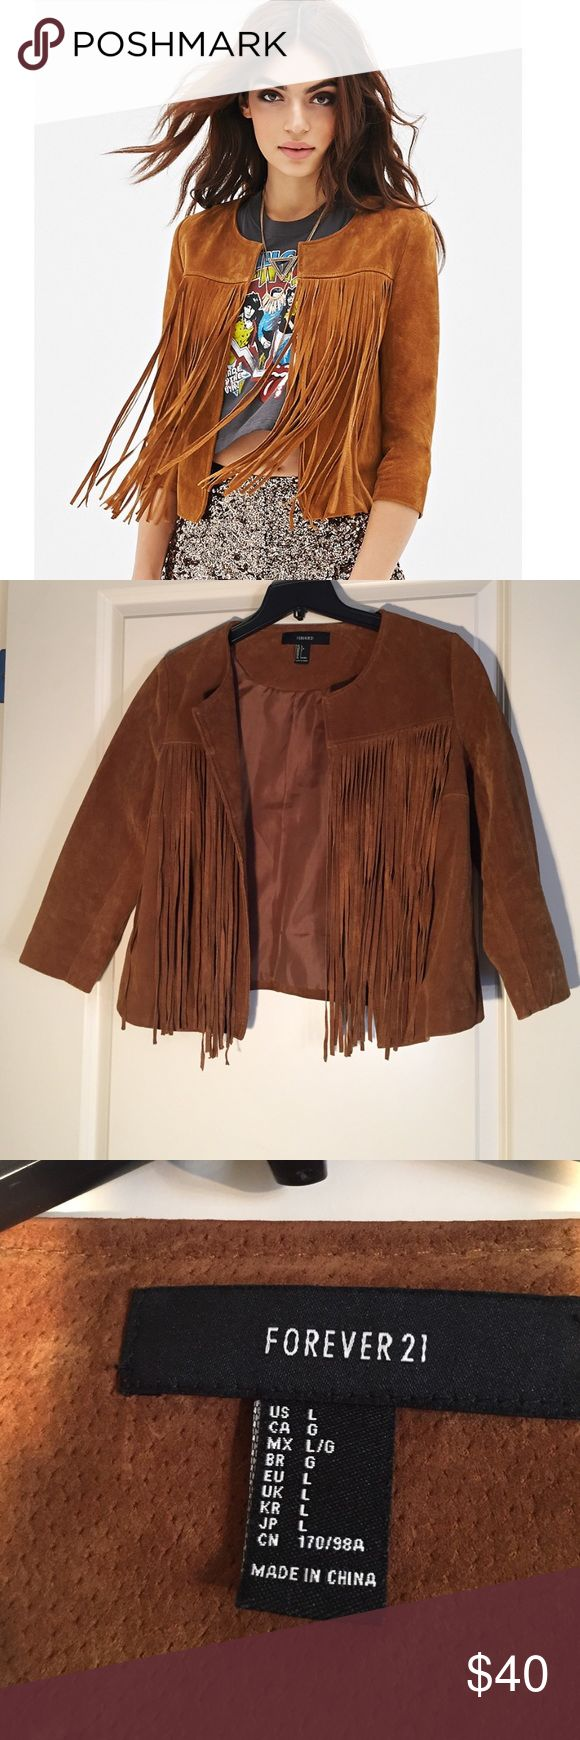 Forever 21 Brown Fringe Suede Jacket Beautiful pristine condition! Only worn ONCE gorgeous suede jacket with cute fringe detailing on the front. Im normally a medium but got a large because i wanted a little looser fit but would definitely fit a medium as well. Any questions please ask :-) Forever 21 Jackets & Coats